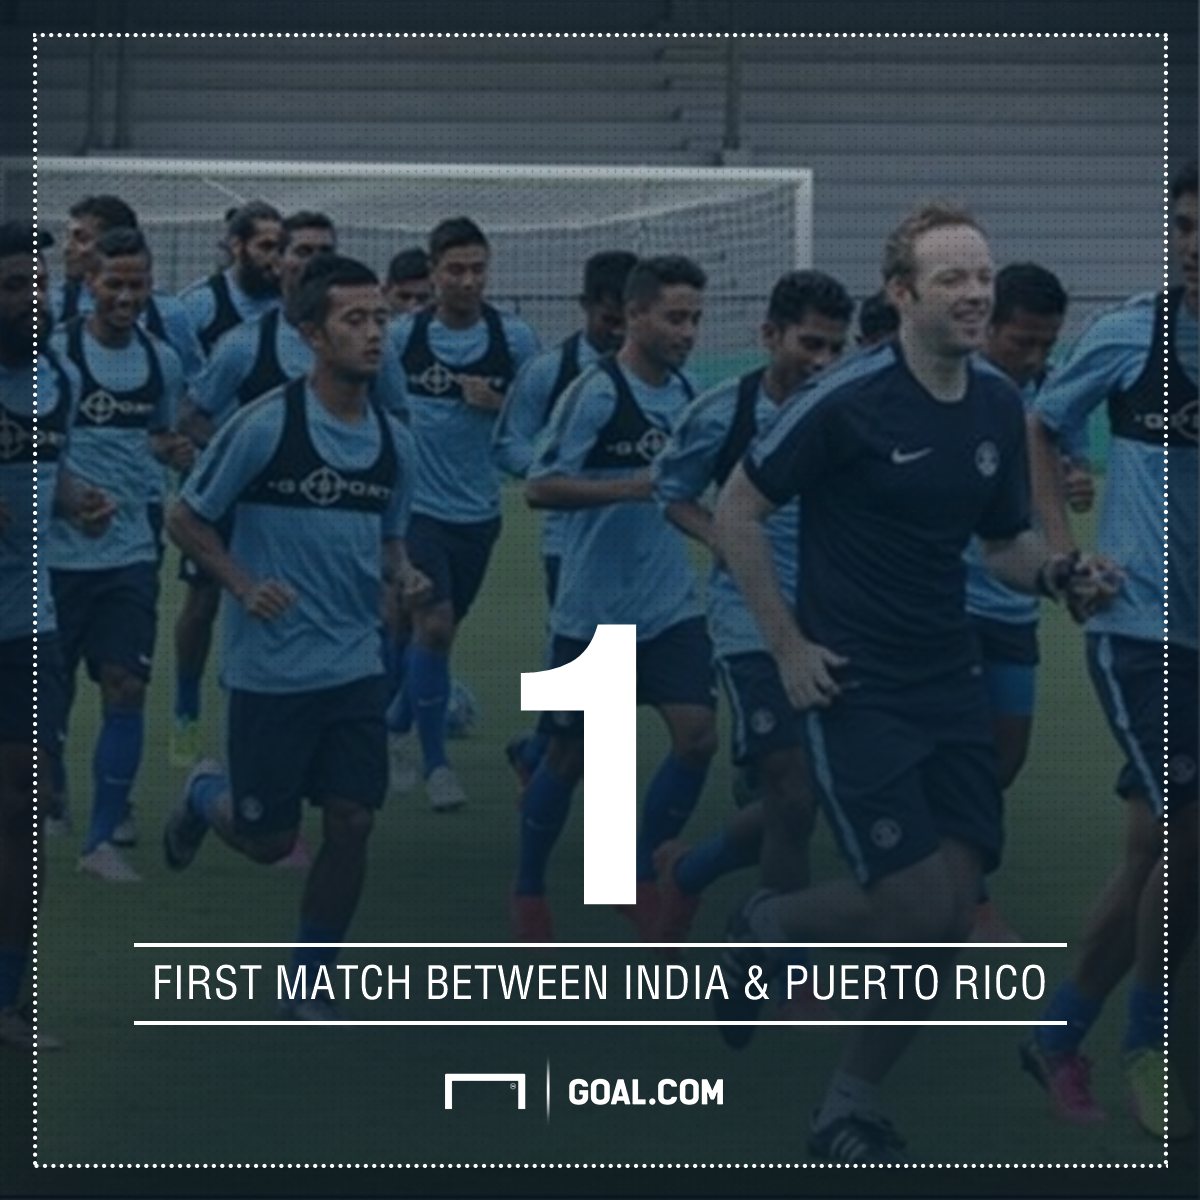 India vs Puerto Rico Playing Surface - Goal.com